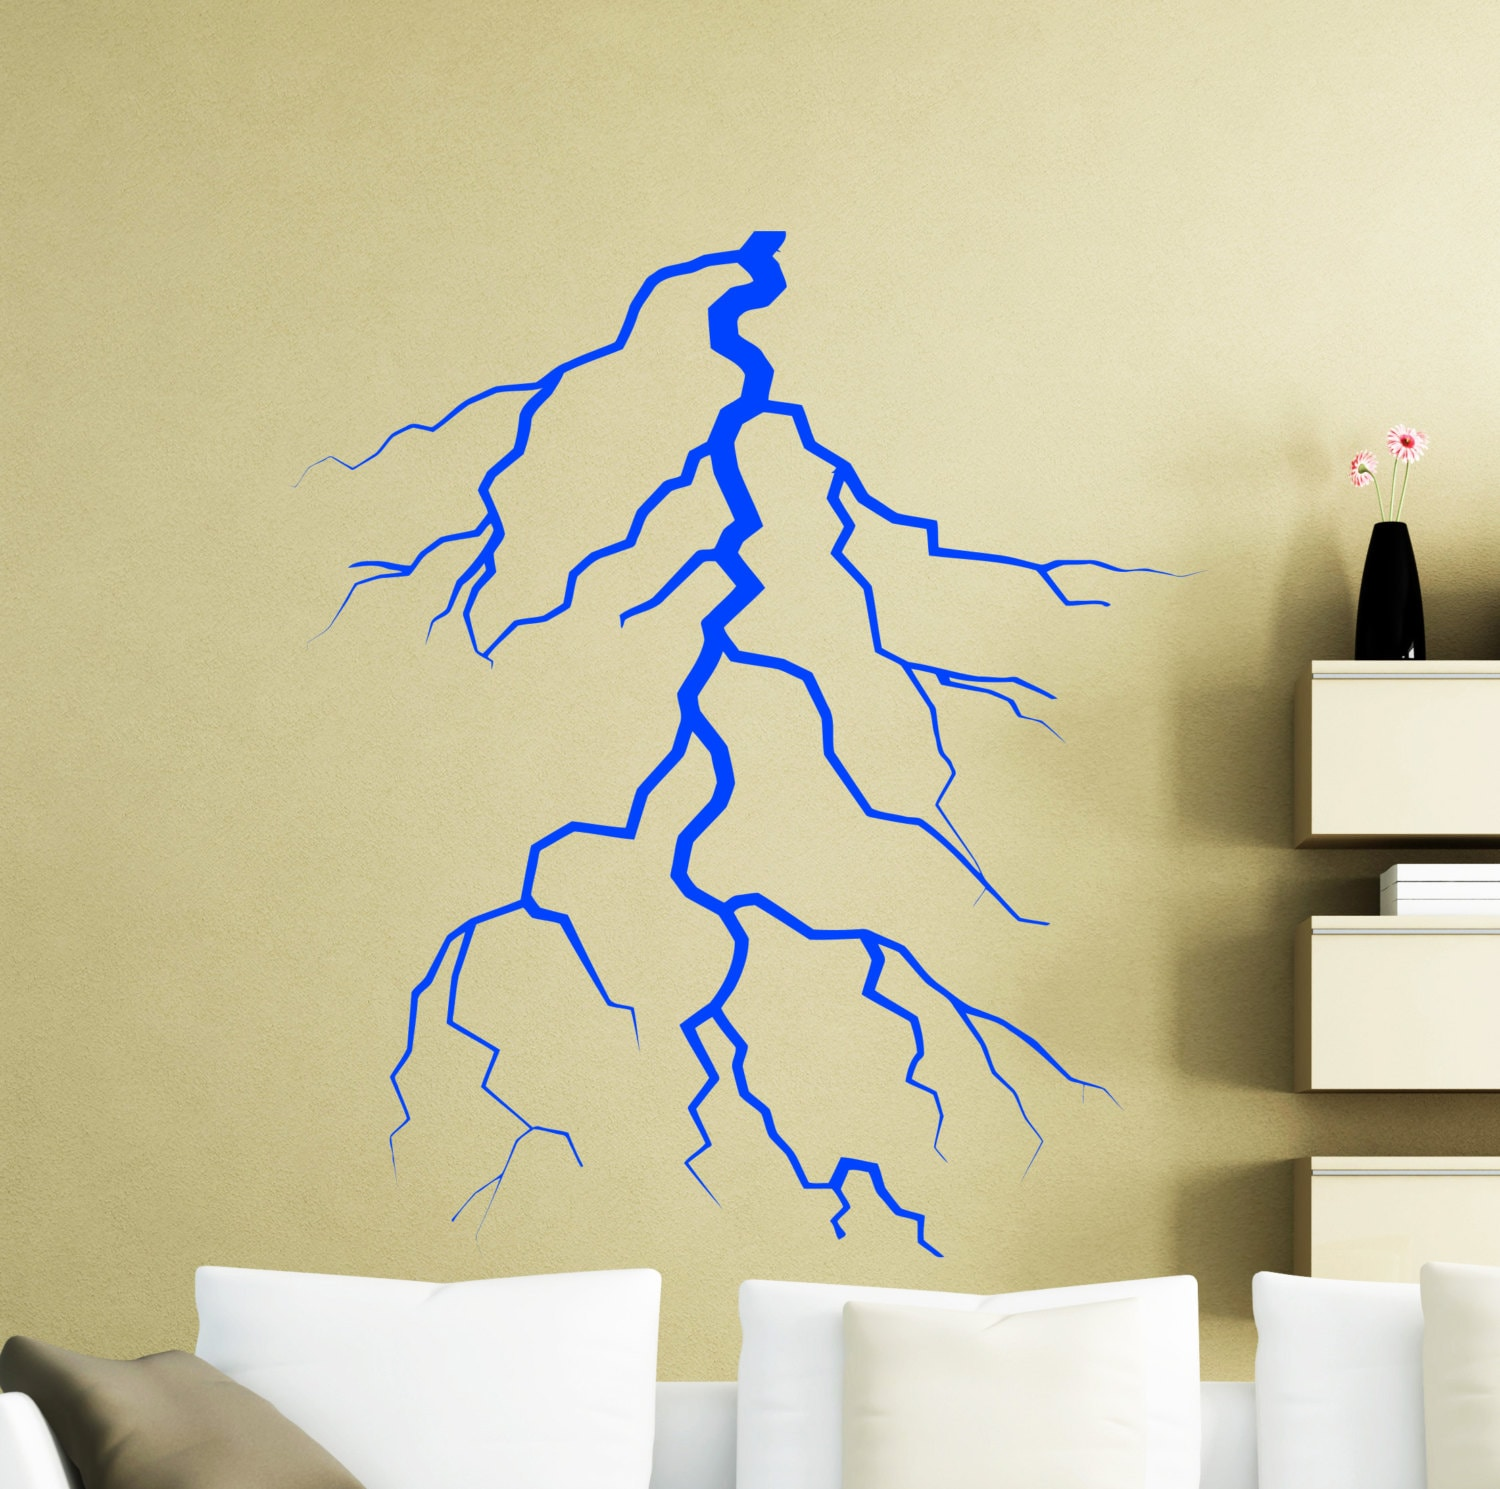 Lightning Strike Wall Decal Thunder Lightning Bolt Vinyl | Etsy